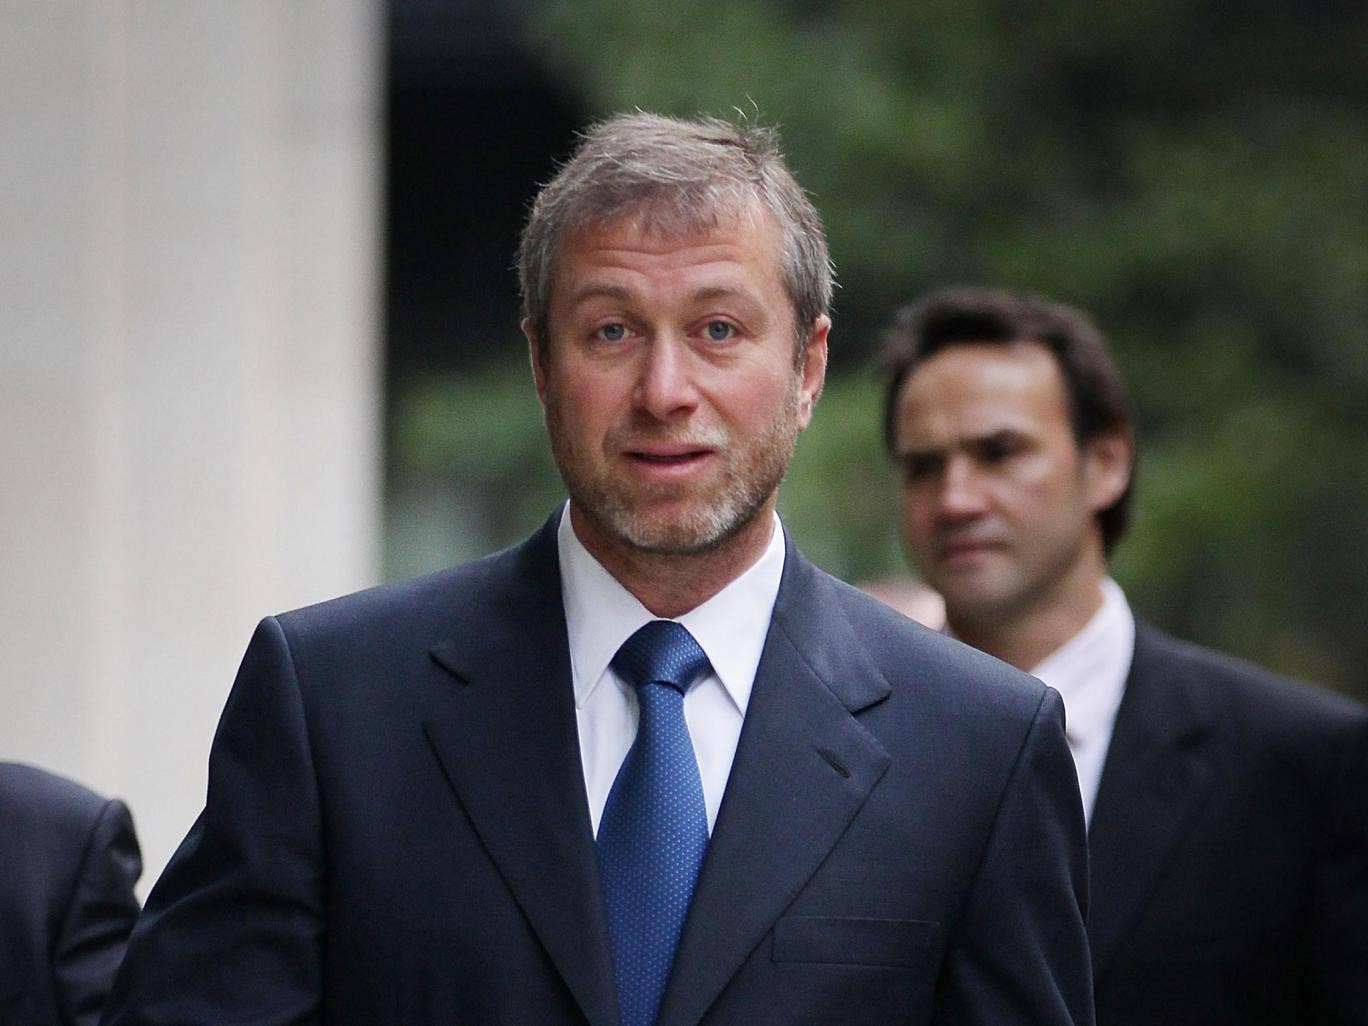 Roman Abramovich claims he knows nothing of the Polonsky deals